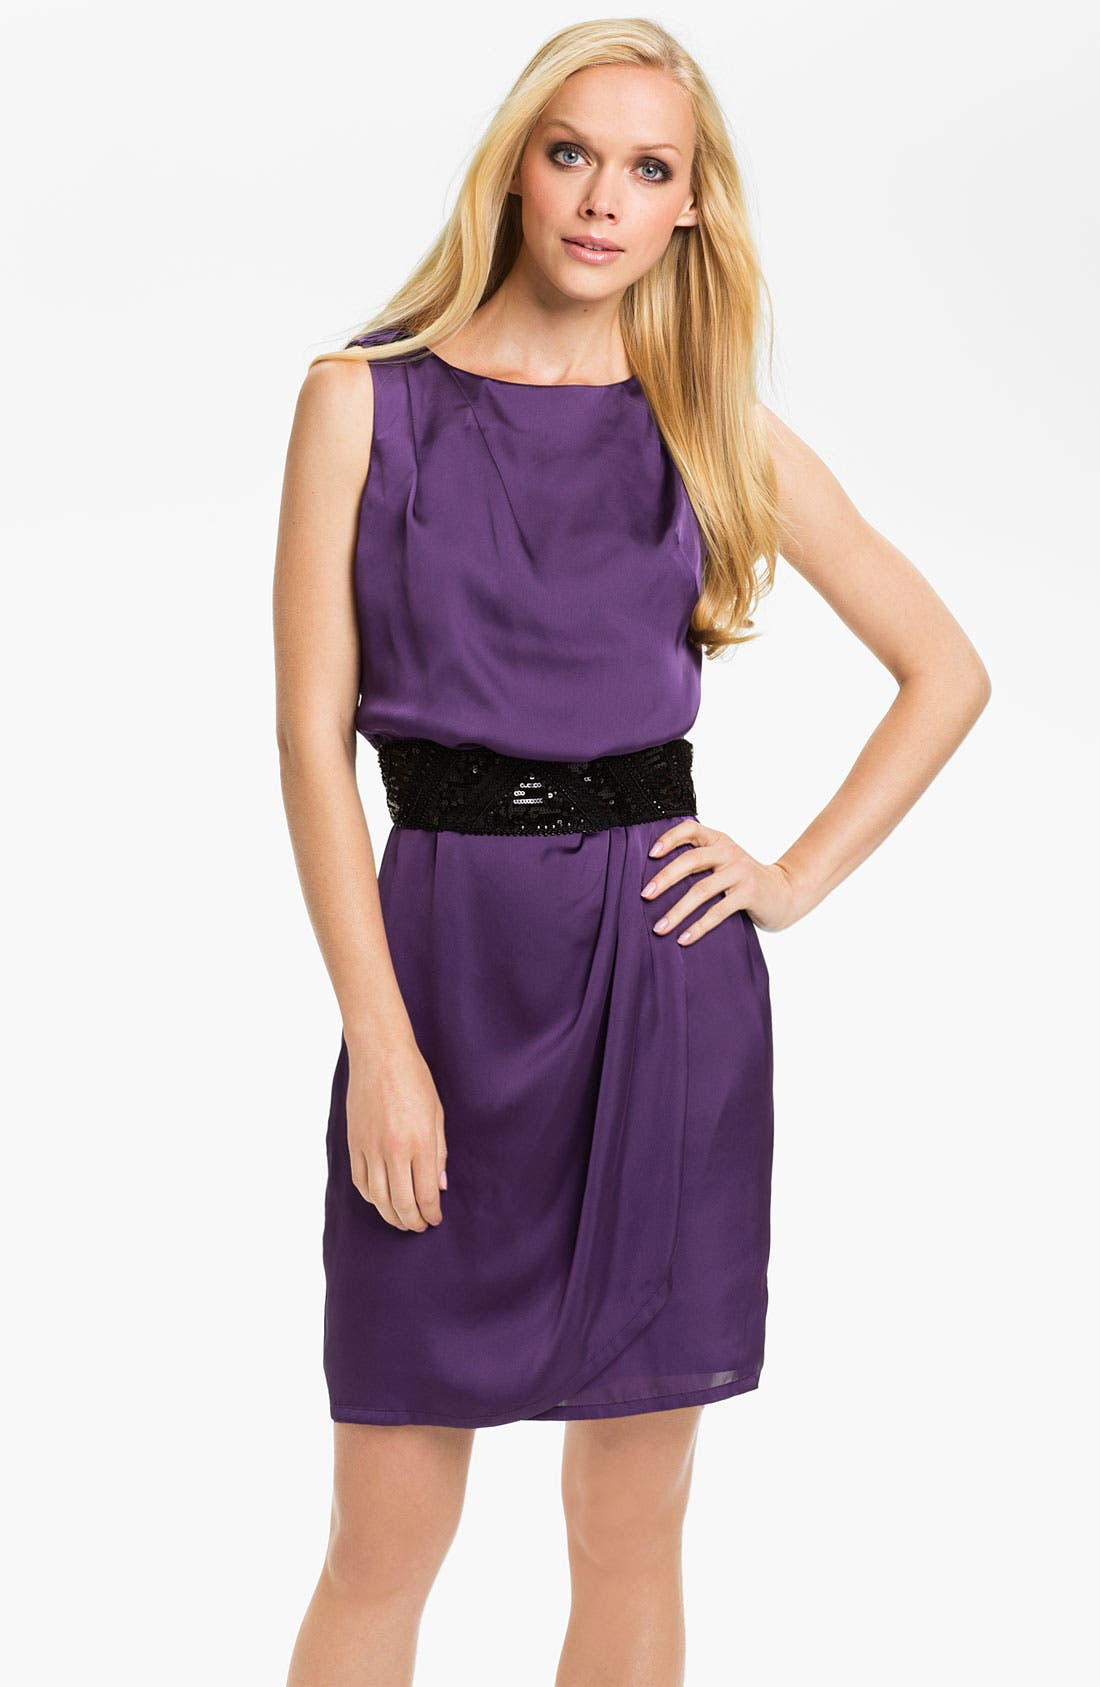 Alternate Image 1 Selected - Vince Camuto Sequin Belted Charmeuse Dress